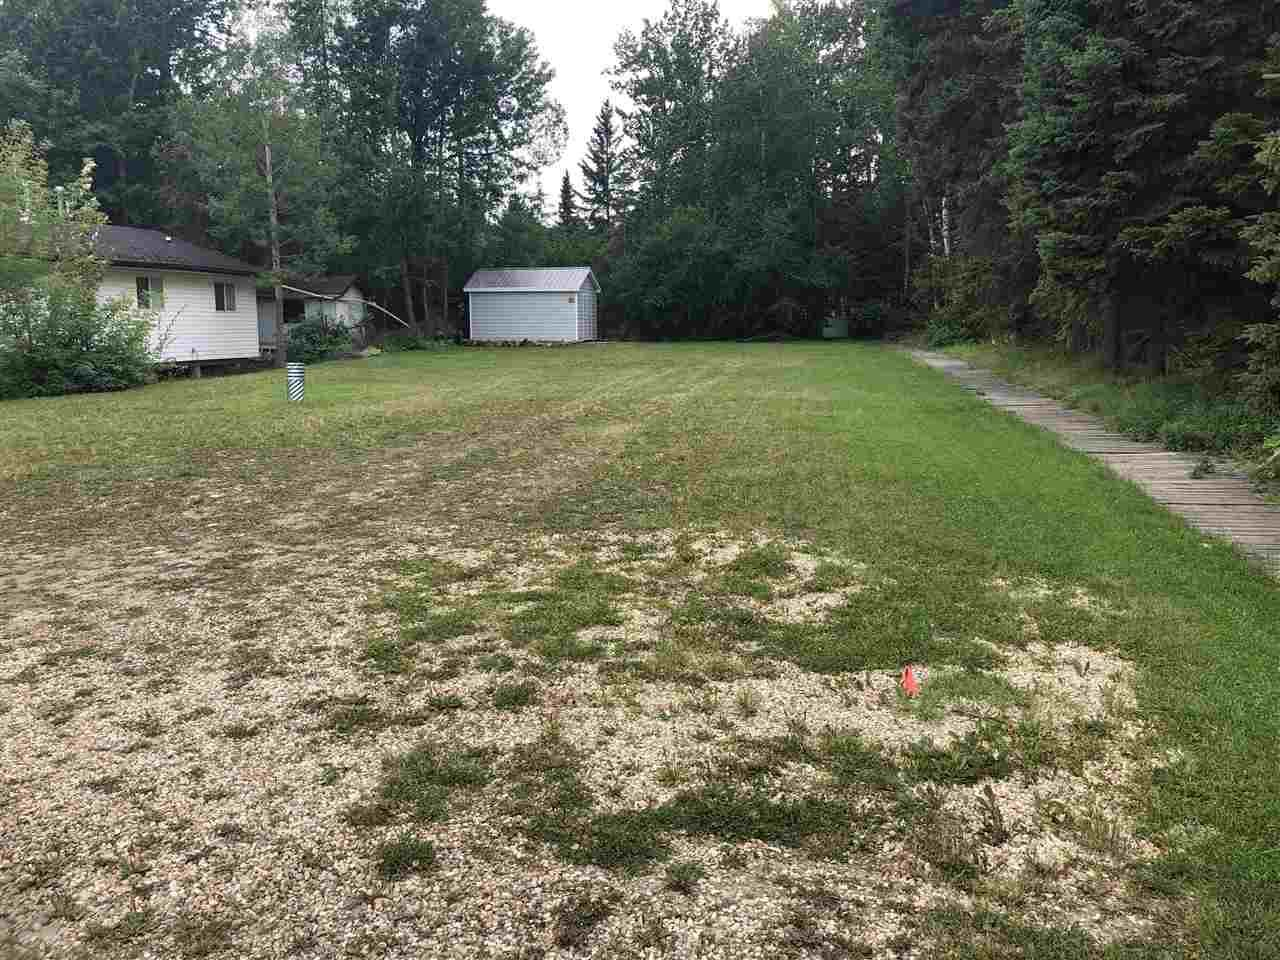 Main Photo: 98 Grandview Beach: Rural Wetaskiwin County Rural Land/Vacant Lot for sale : MLS®# E4225839